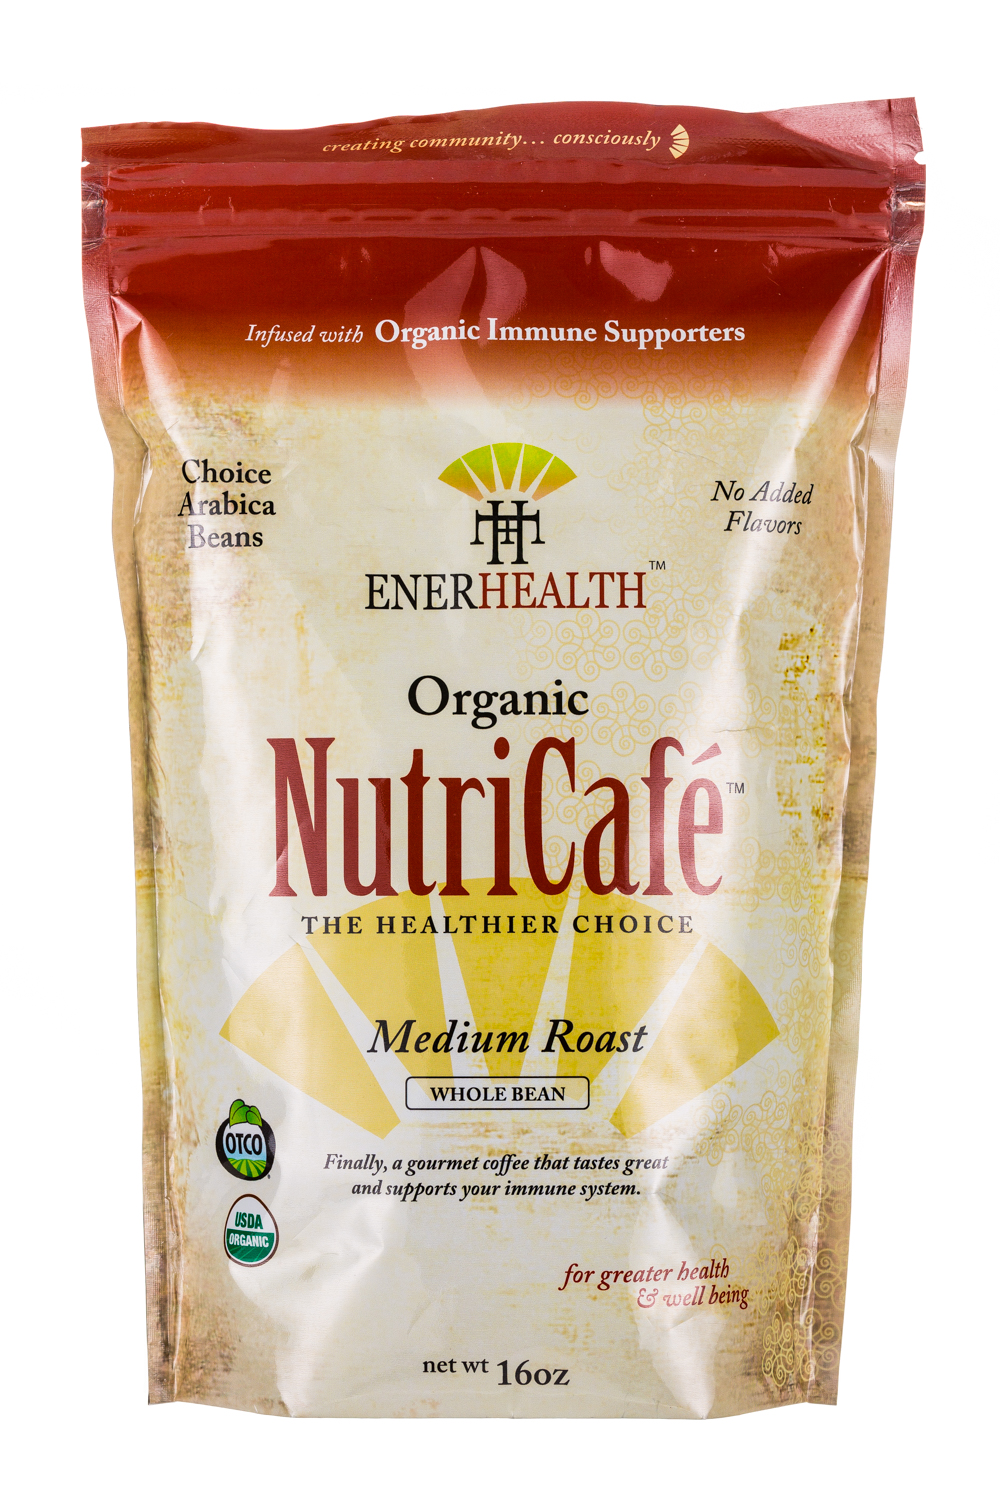 Organic NutriCafe-Medium Roast- Infused with Organic Immune Supporters